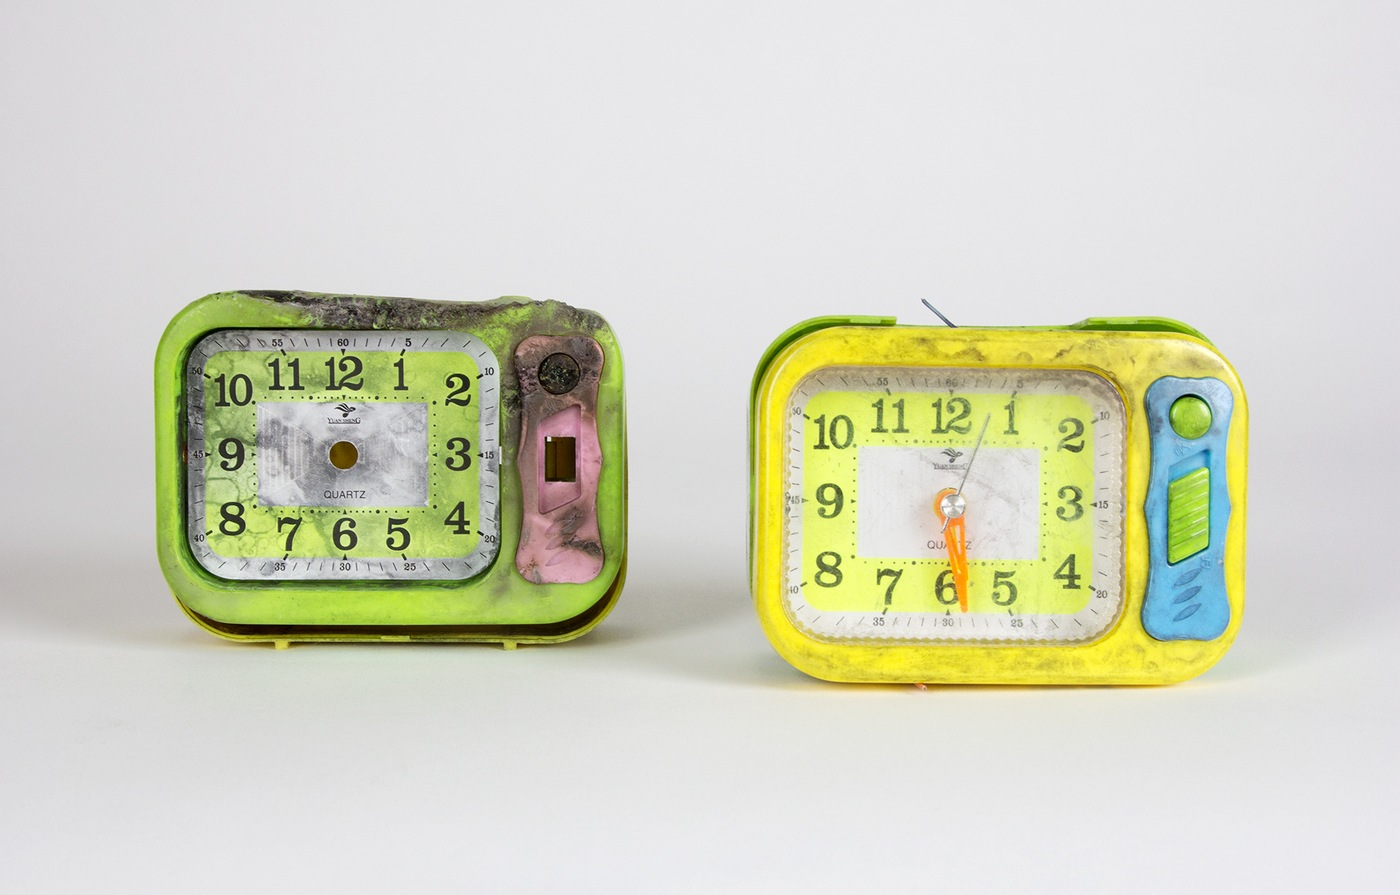 Photo of two damaged, neon-colored alarm clocks. They were part of a bomb that Faisal Shahzad planned to detonate in Times Square in 2010.